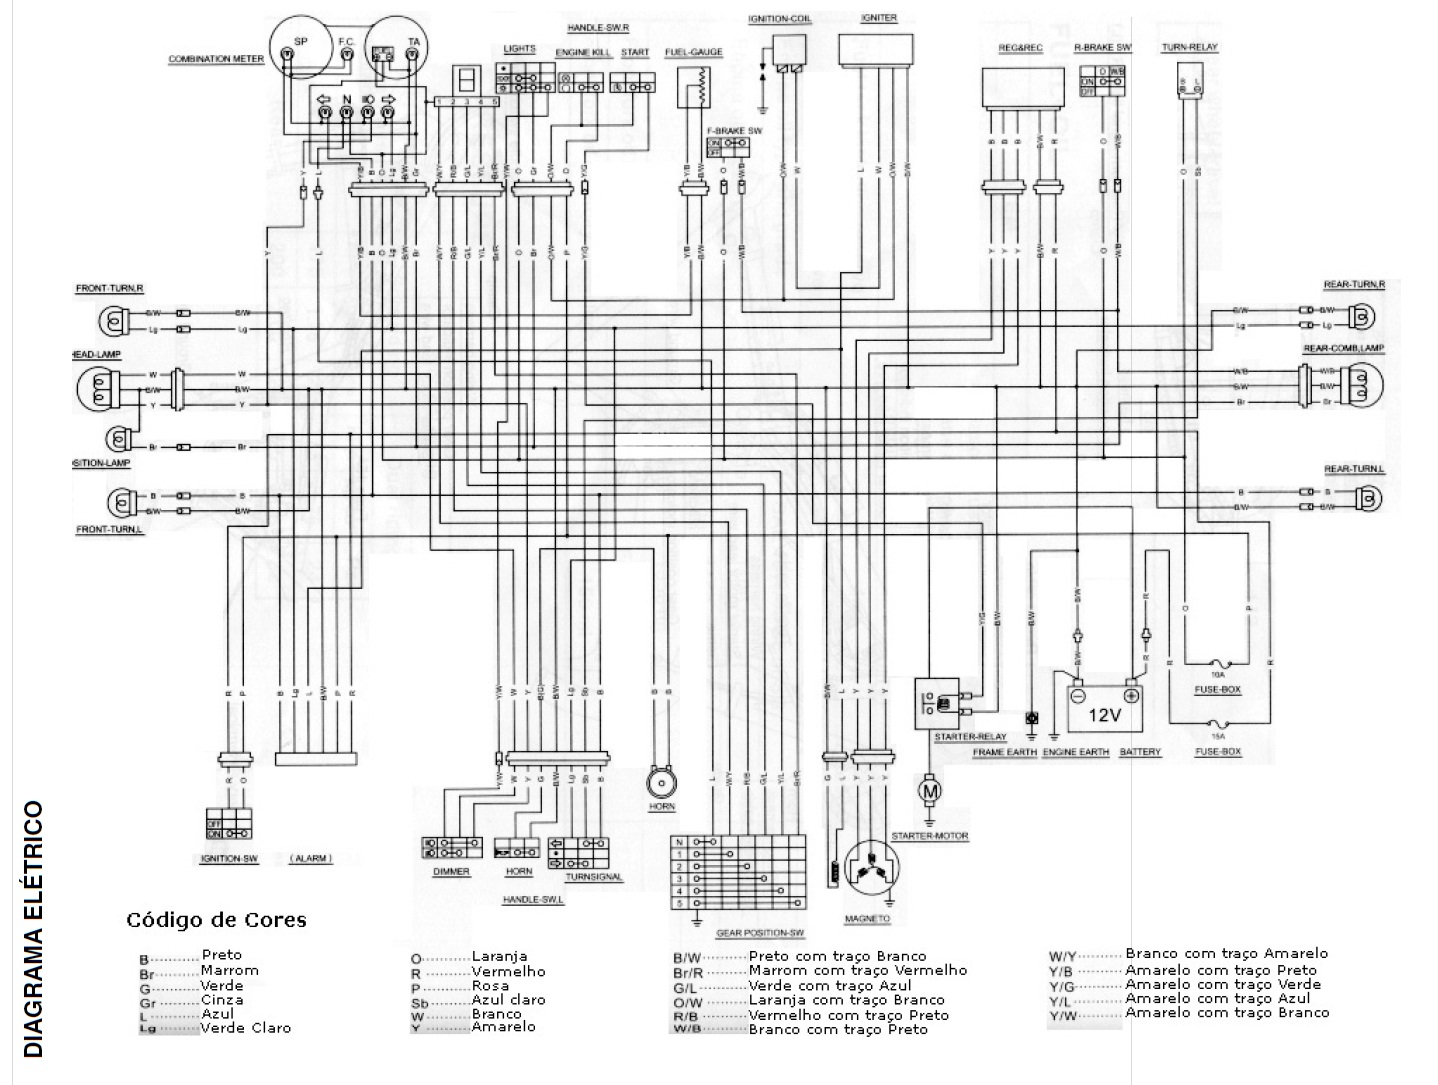 grand marquis wiring diagram on grand images free download wiring Mercury Grand Marquis Radio Wiring Diagram grand marquis wiring diagram 2 2005 mercury mountaineer radio wiring diagram avalon wiring diagram mercury grand marquis radio wiring diagram